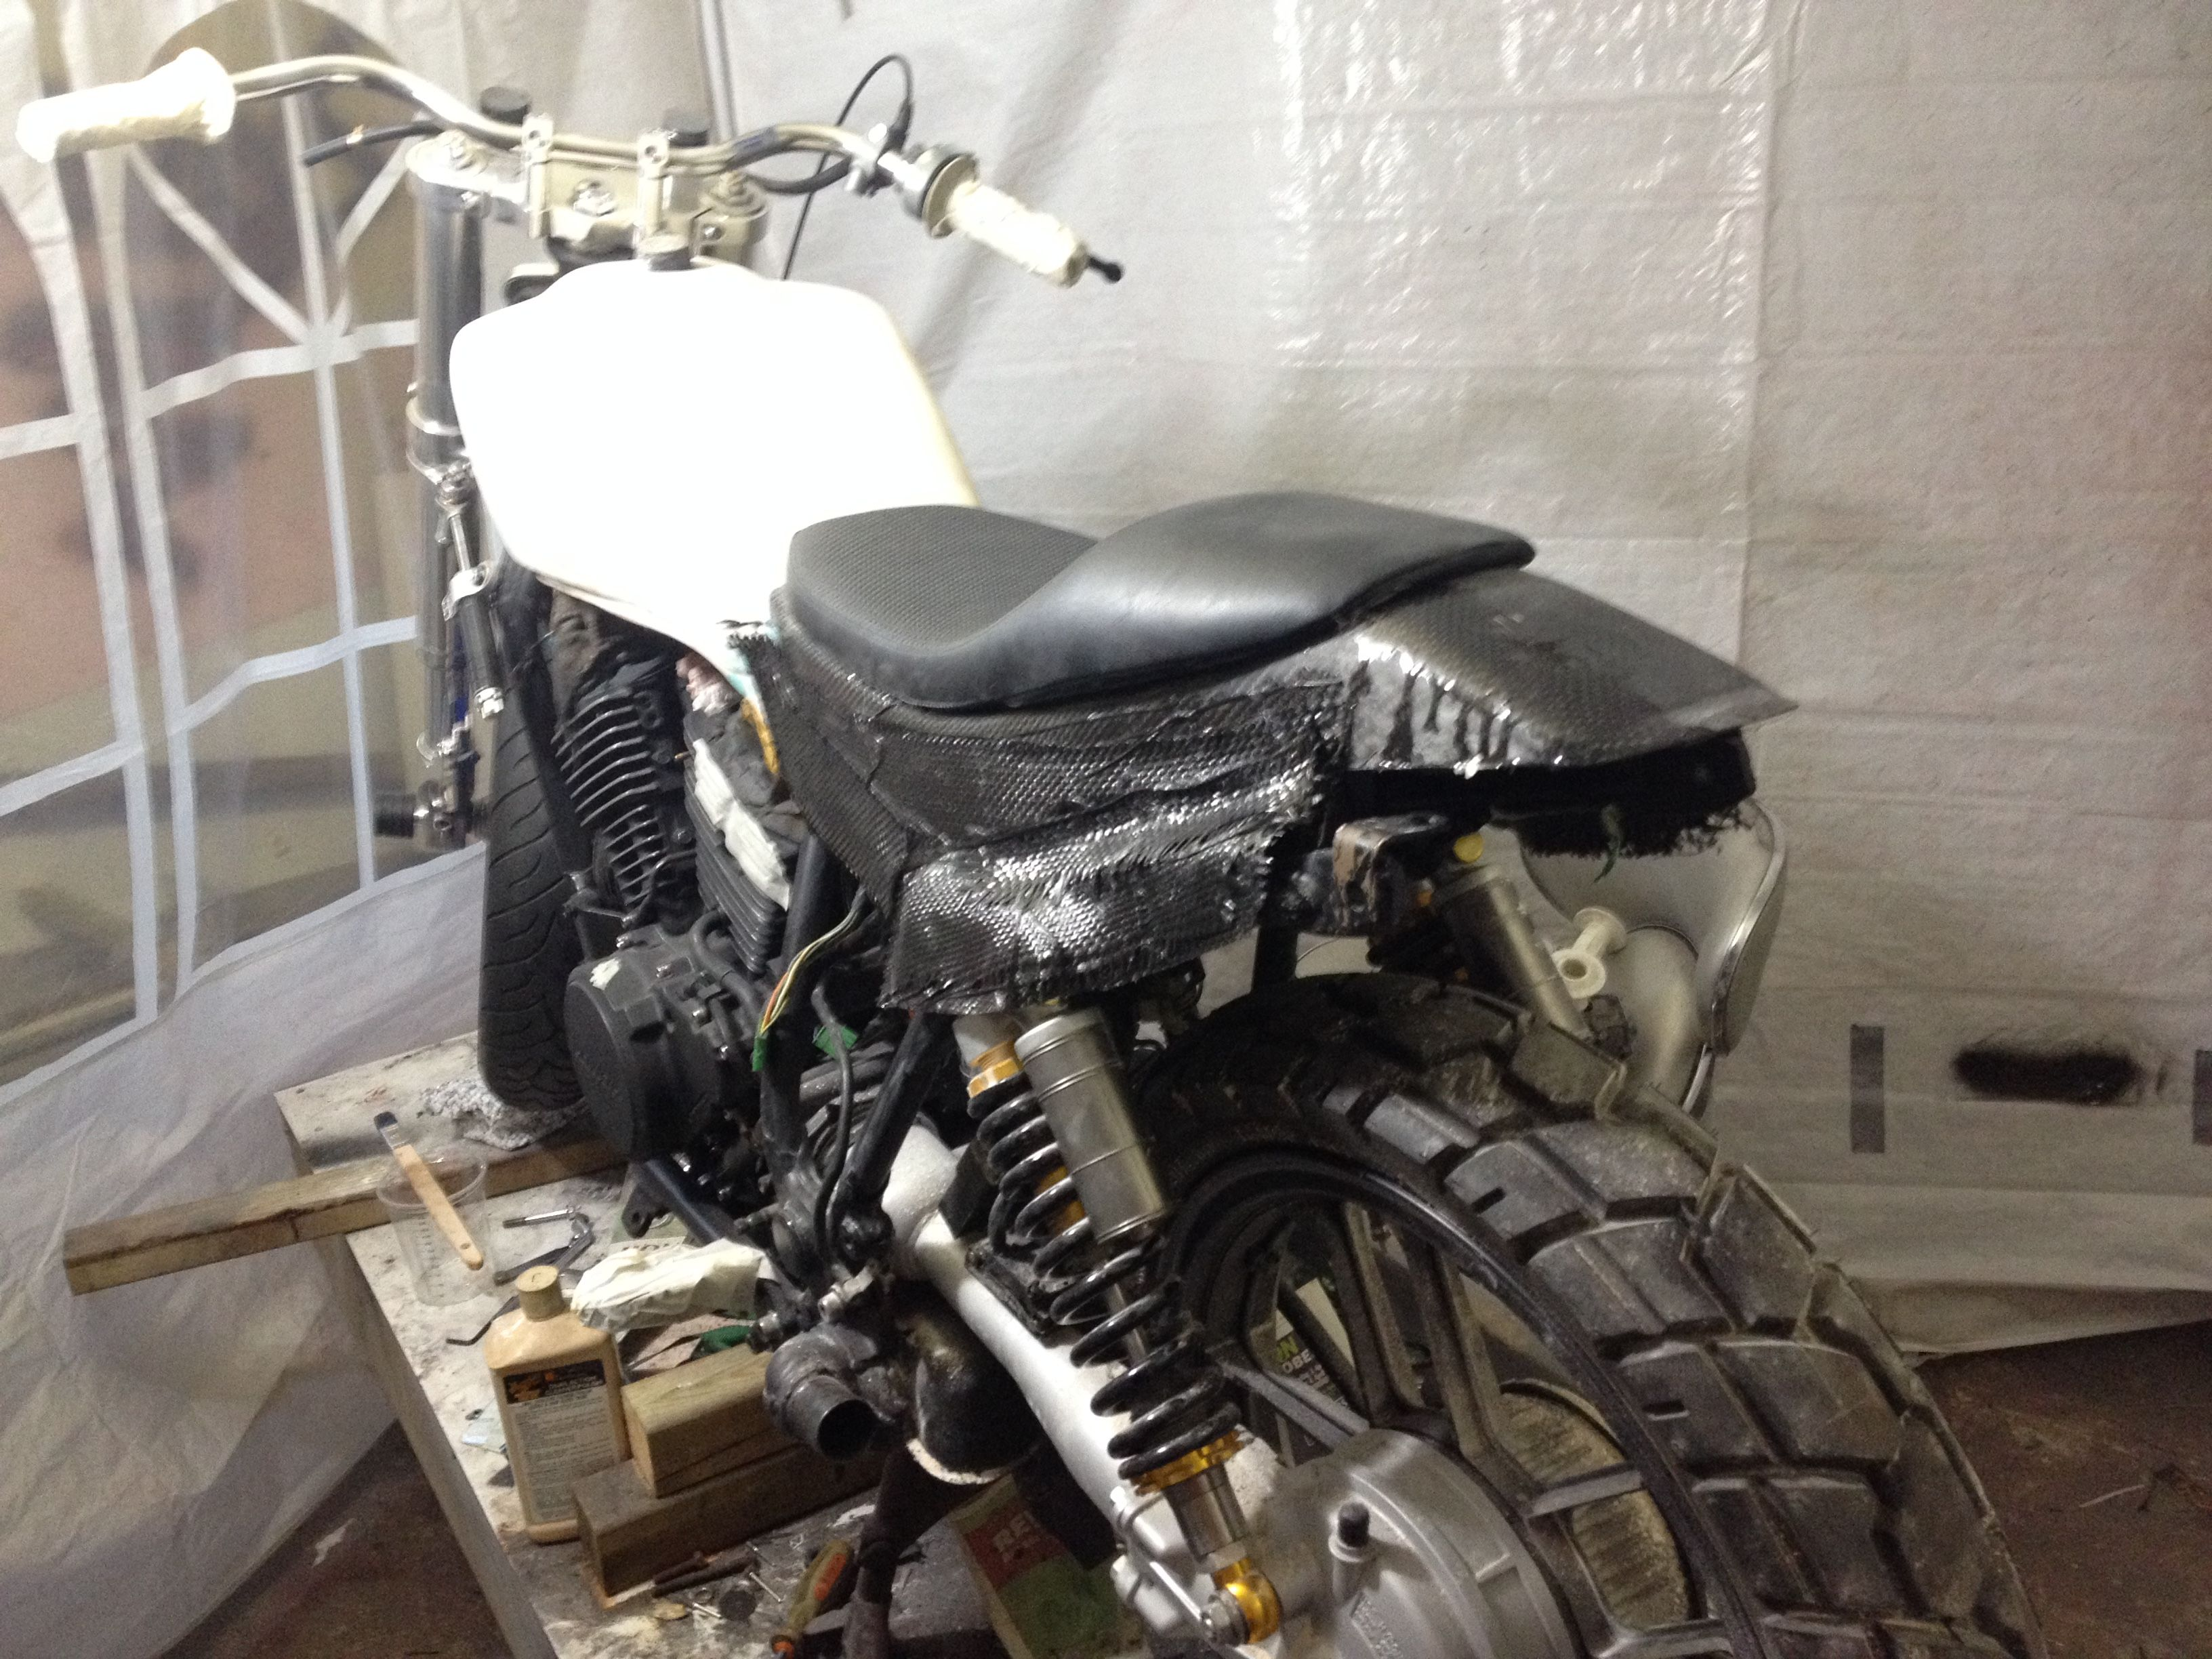 Honda Vt 500 Ft Carbon Boner Dirty Hand Customs The Real One